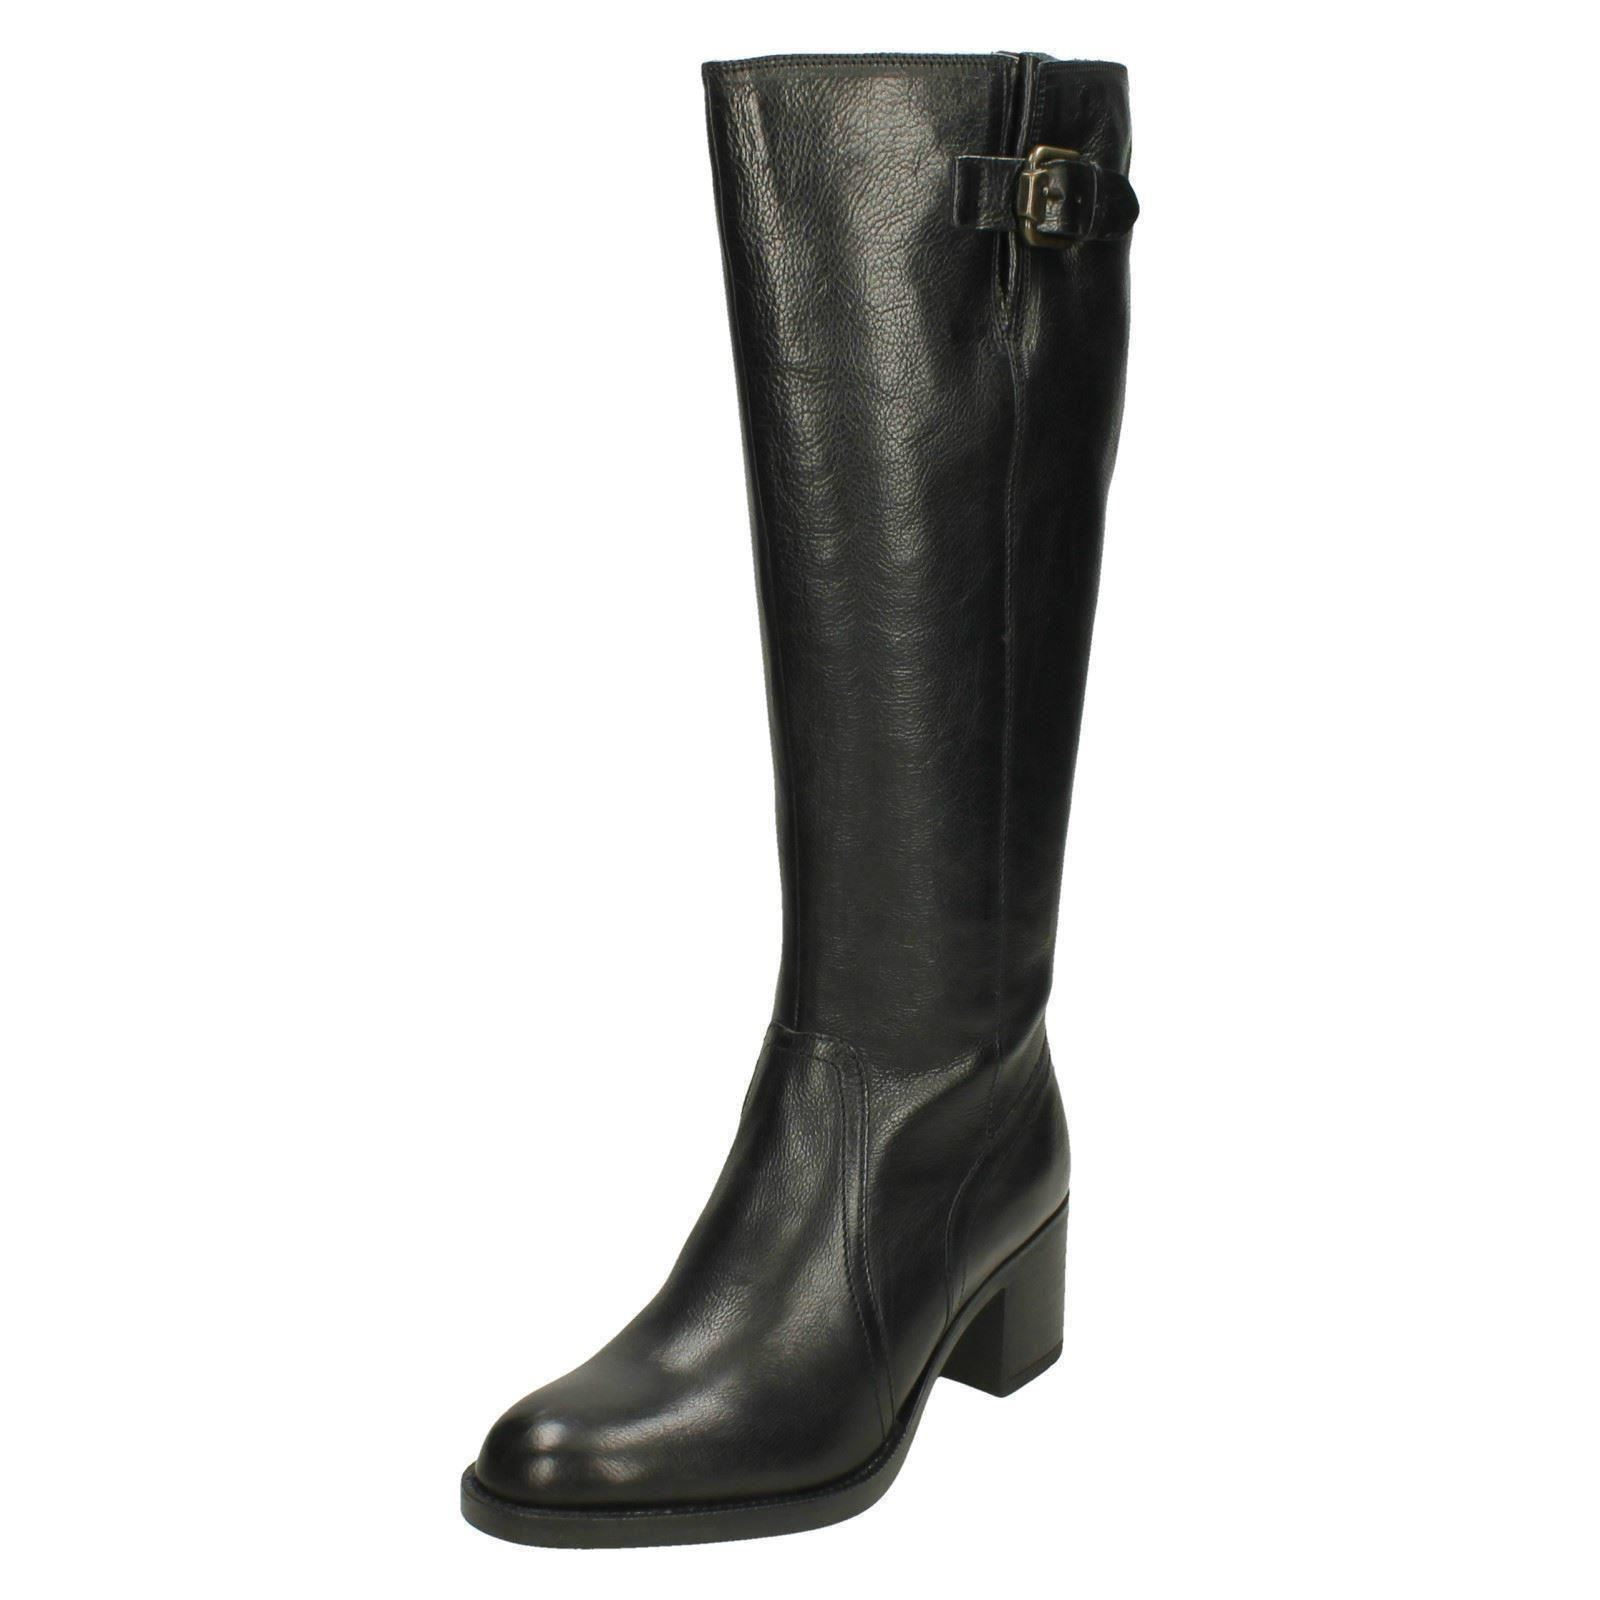 Ladies-Clarks-Heeled-Knee-High-Long-Leather-Boots-